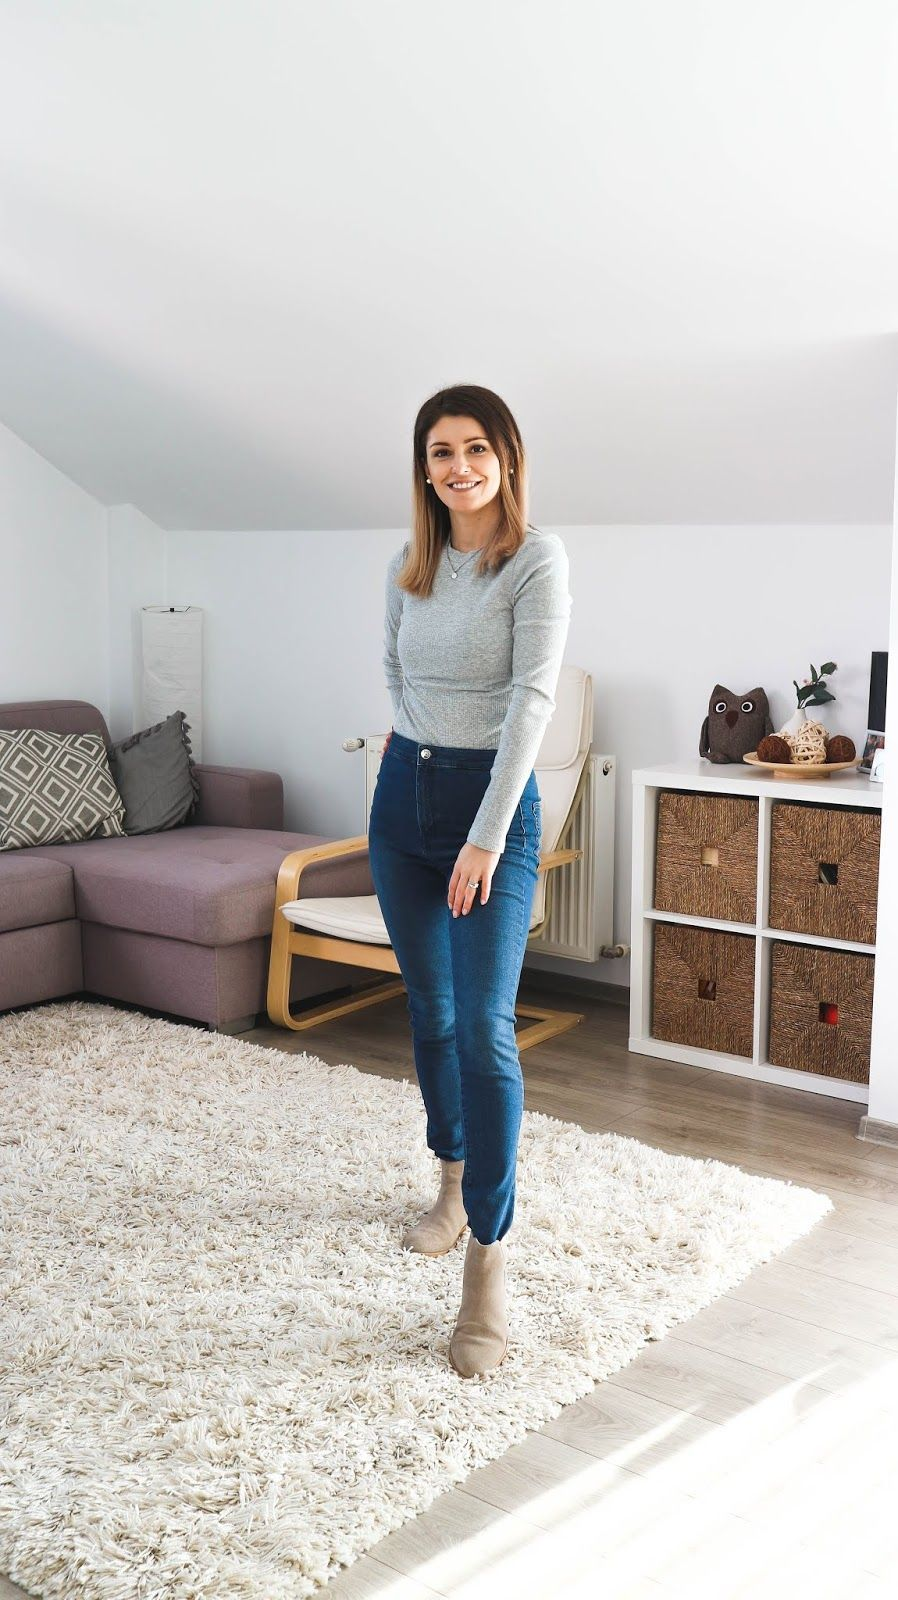 Ribbed Grey Top, High Rise Skinny Jeans, Beige Ankle Boots   Simple Mom Outfits #momstyle #momoutfit #momfashion #outfit #springstyle #skinnyjeansandankleboots Ribbed Grey Top, High Rise Skinny Jeans, Beige Ankle Boots   Simple Mom Outfits #momstyle #momoutfit #momfashion #outfit #springstyle #skinnyjeansandankleboots